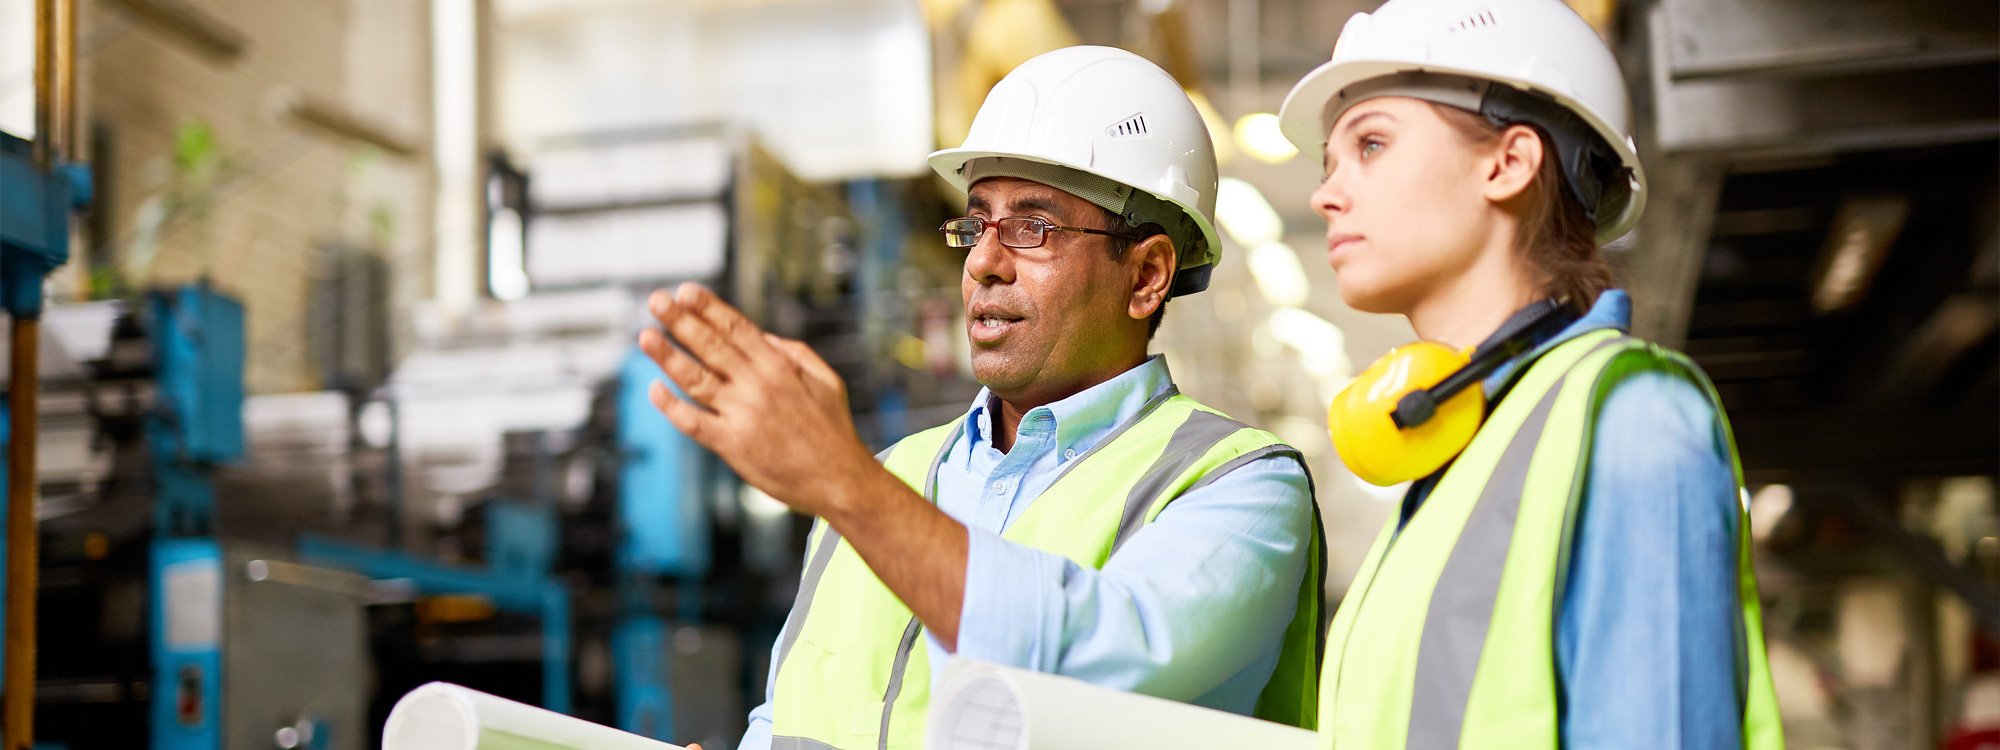 man in hard hat talking to woman in hard hat and point elsewhere